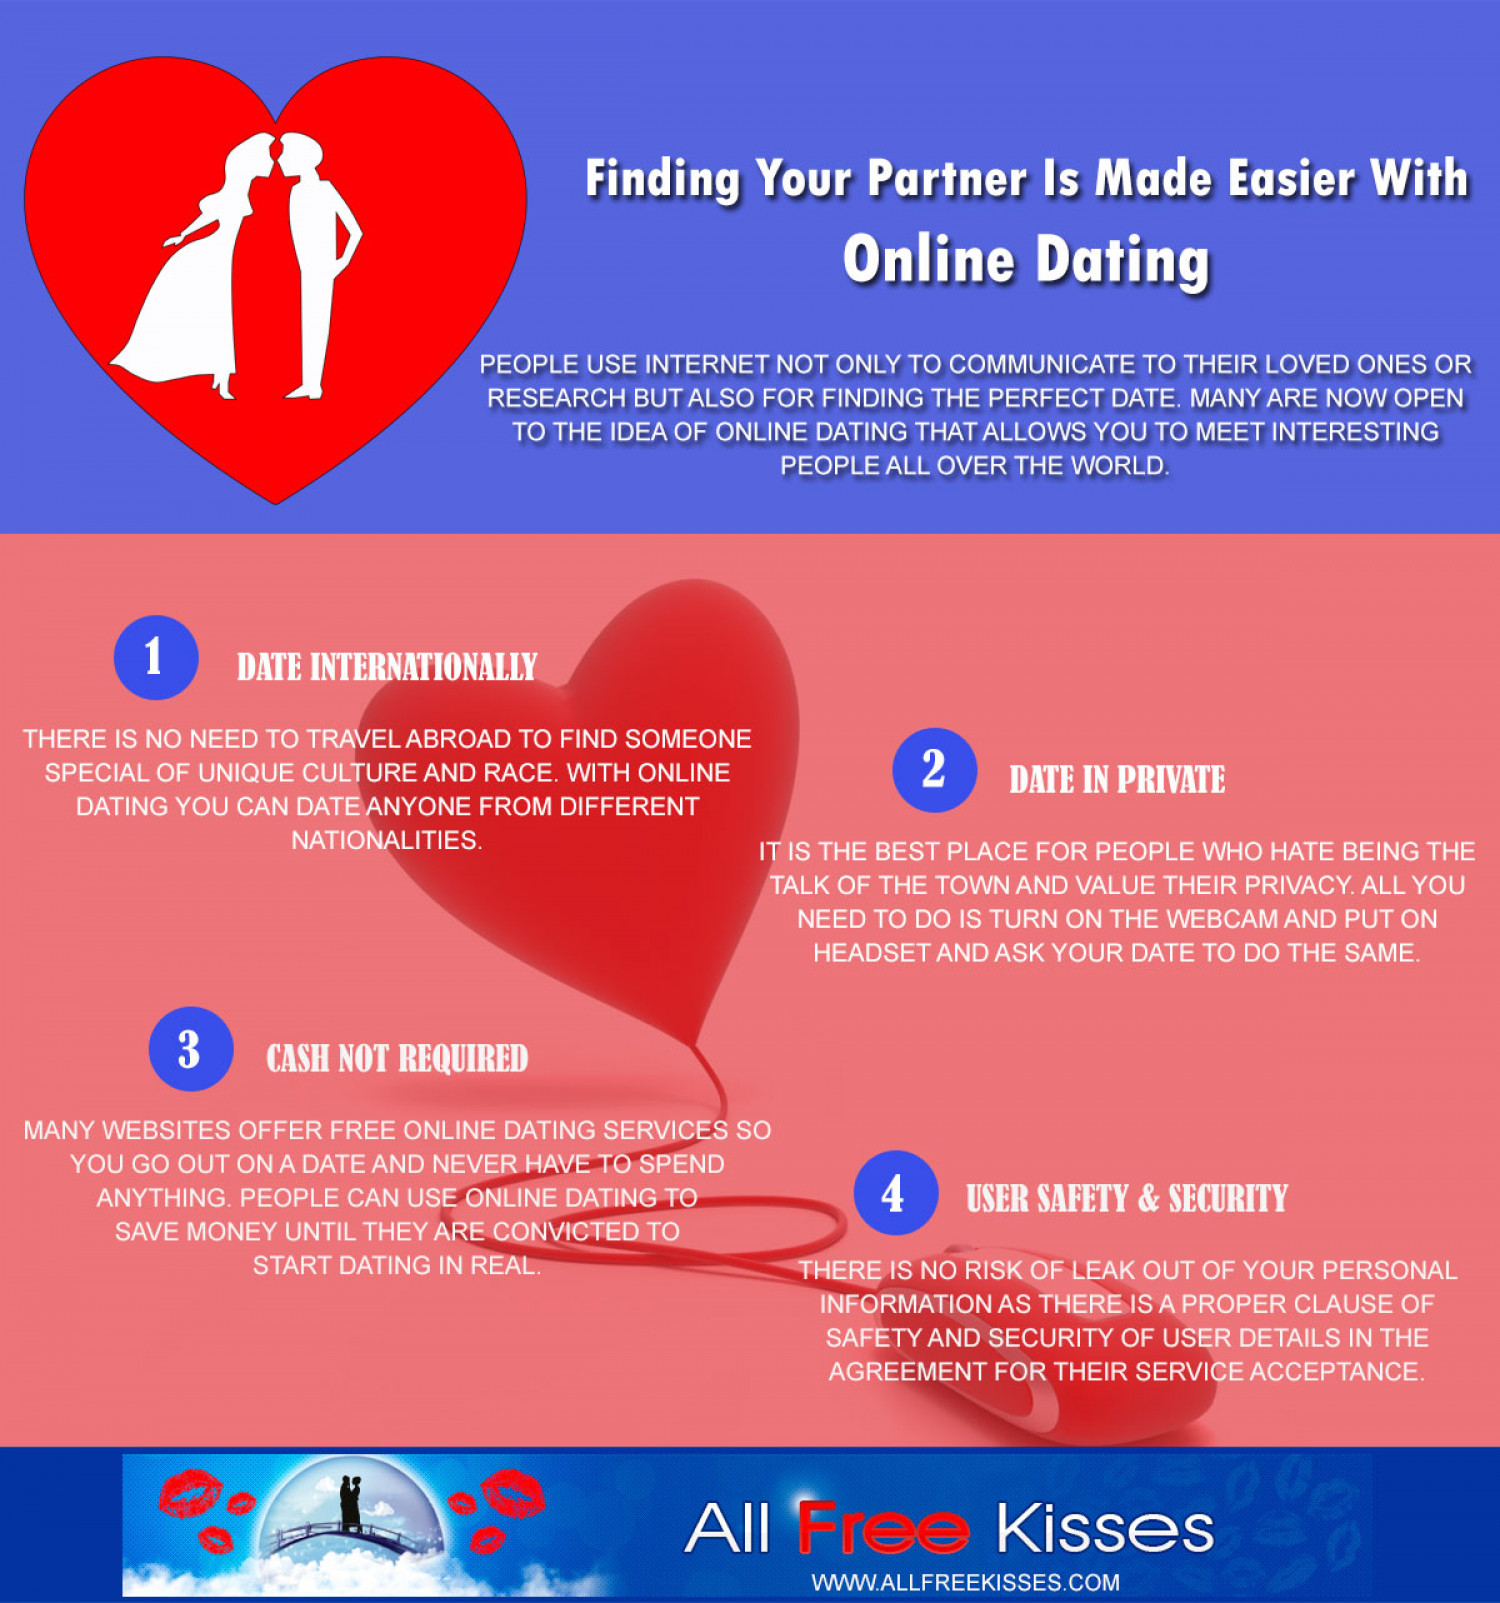 Find Your Partner with Online Dating Infographic